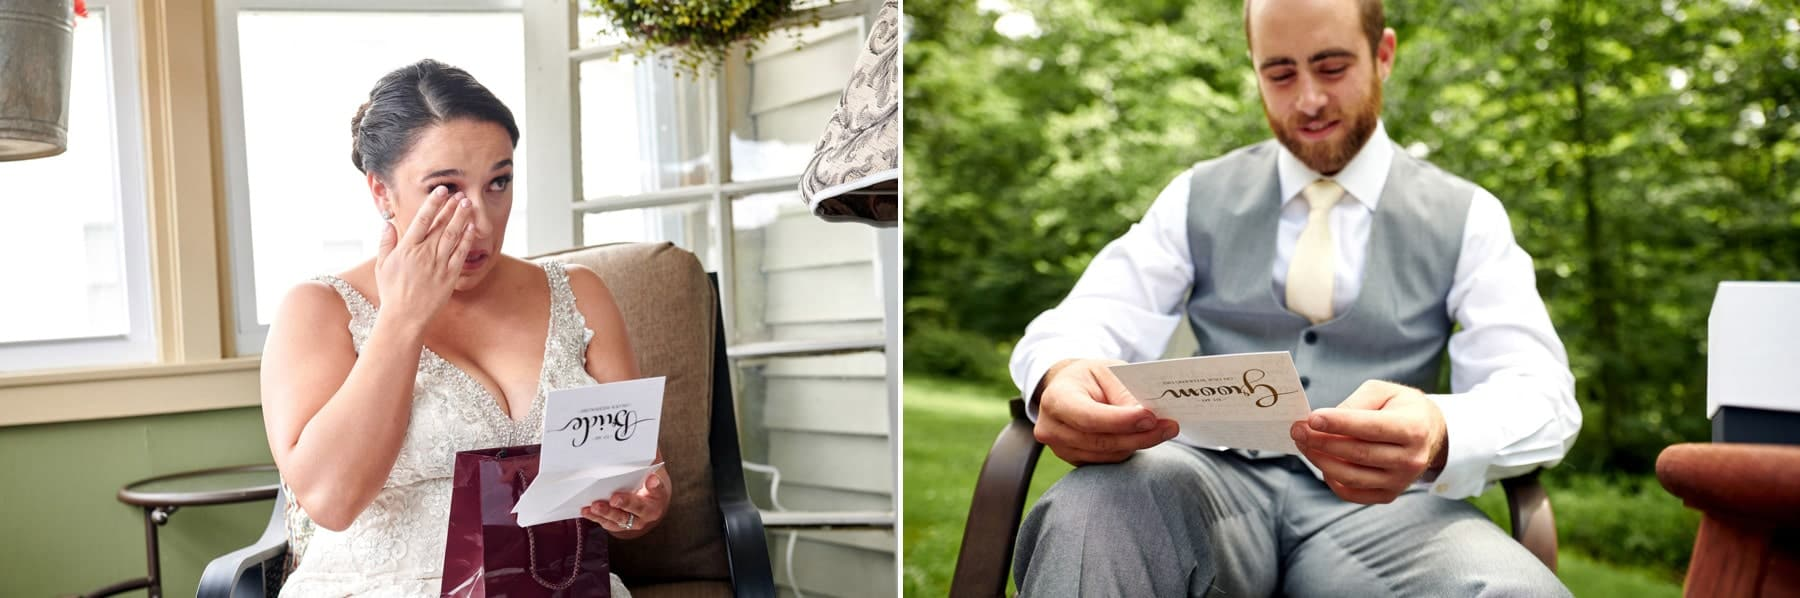 photo of bride and groom reading notes from each other